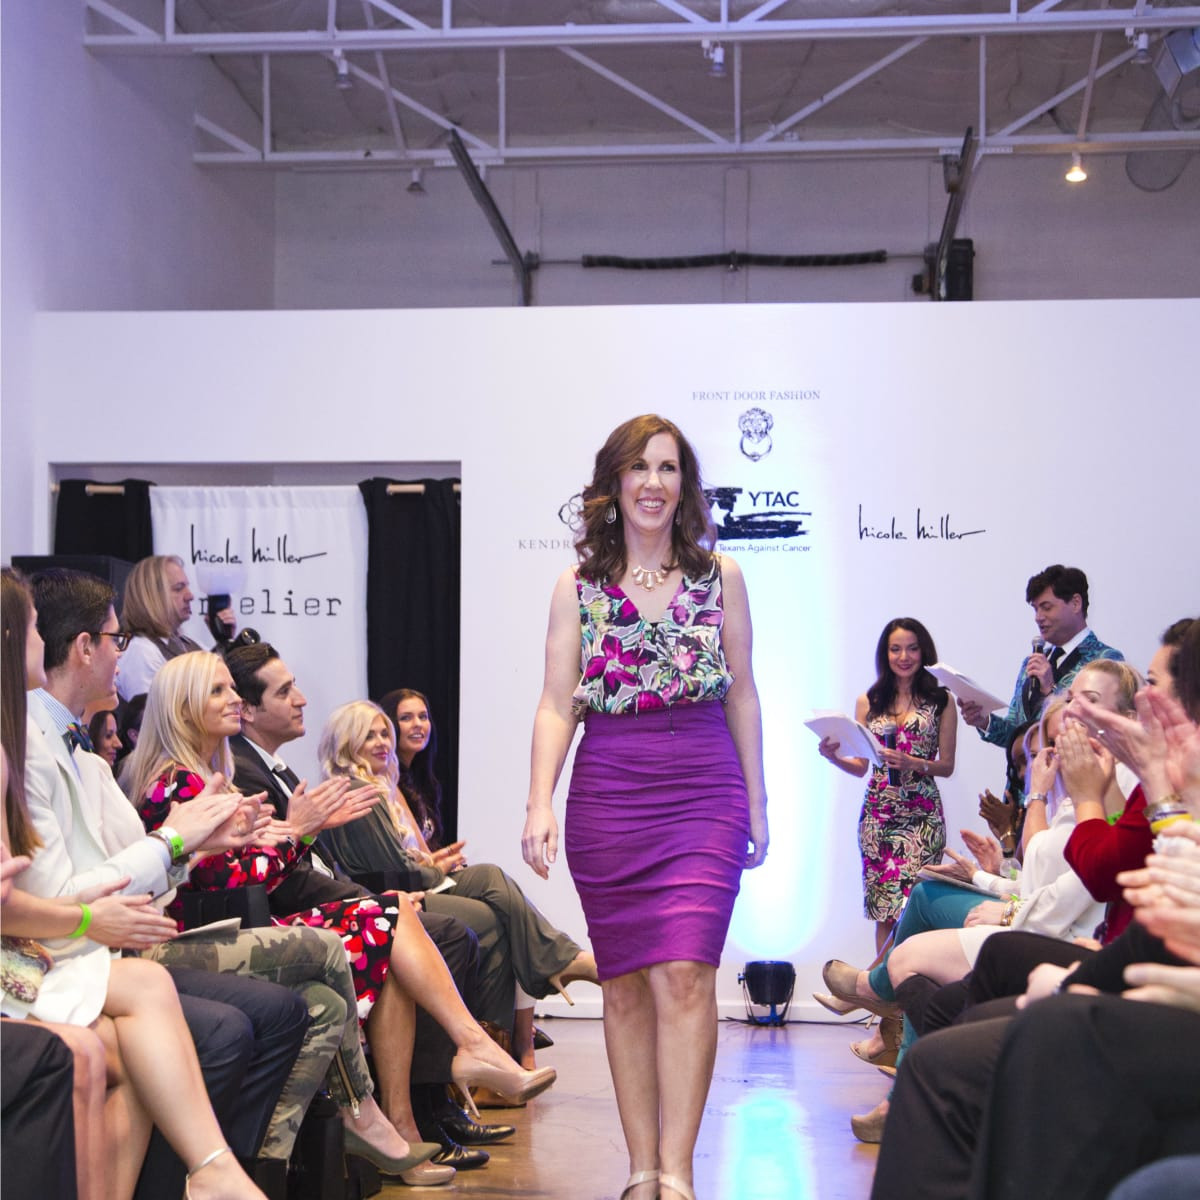 YTAC STRUT fashion show